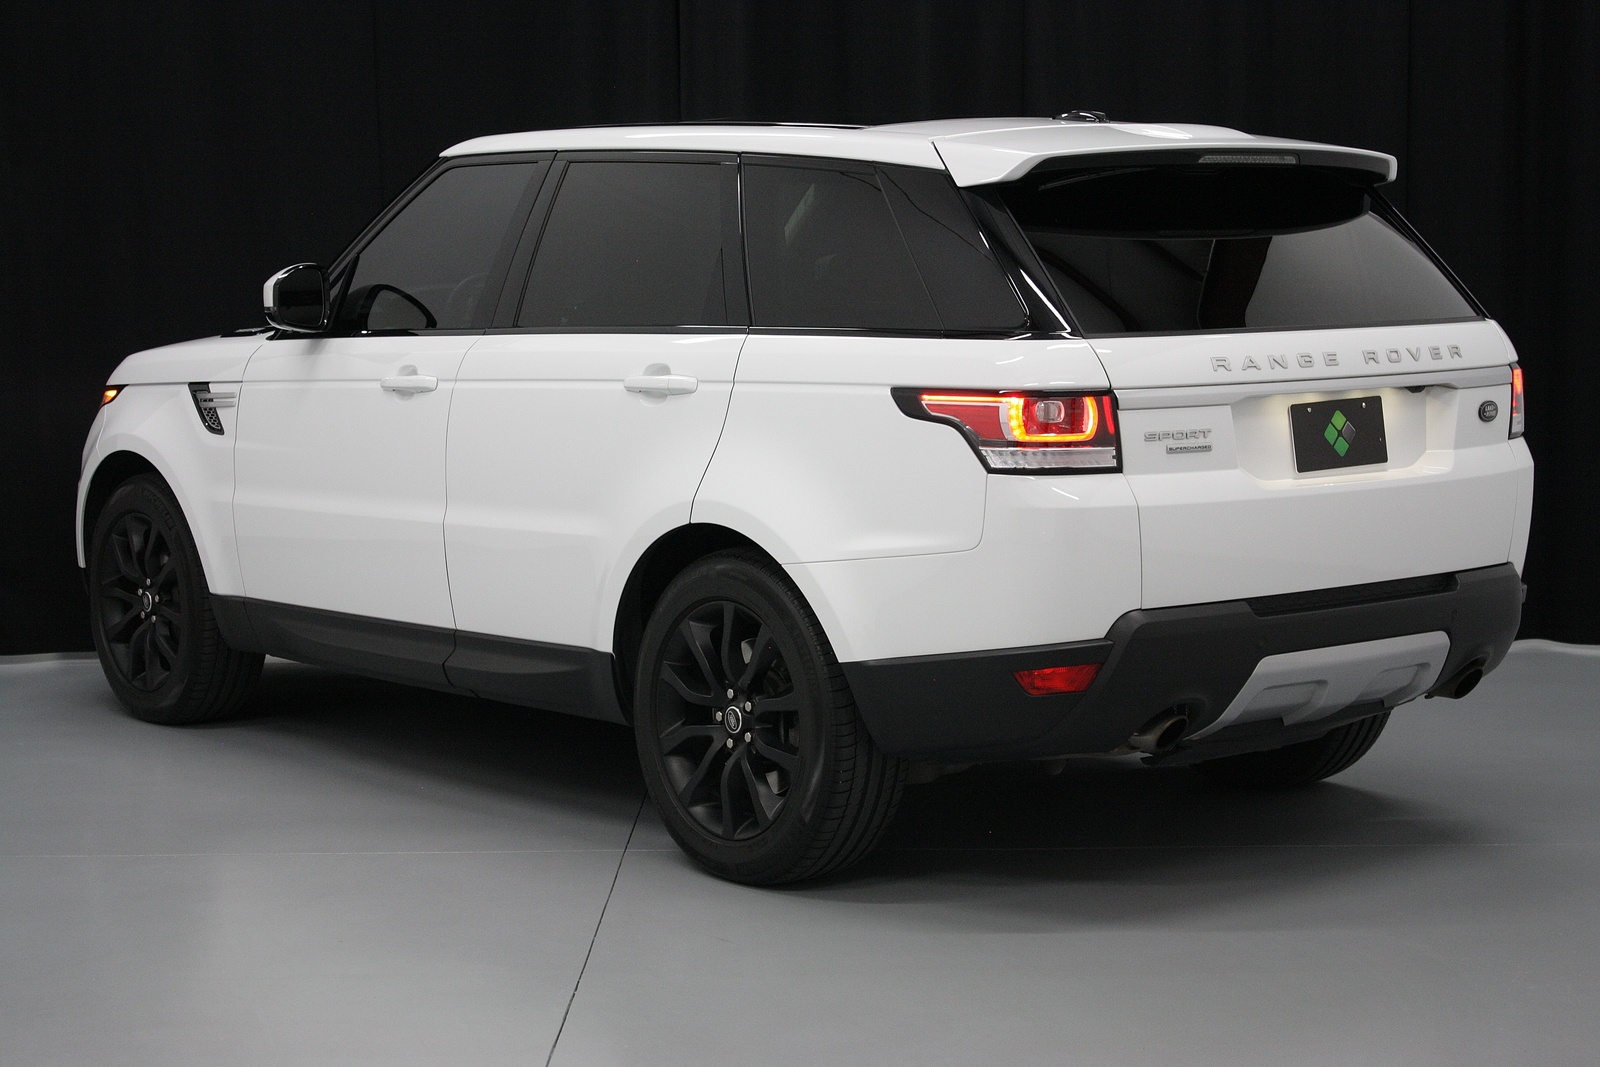 new range rover sport 2014 for sale best deals from html autos weblog. Black Bedroom Furniture Sets. Home Design Ideas